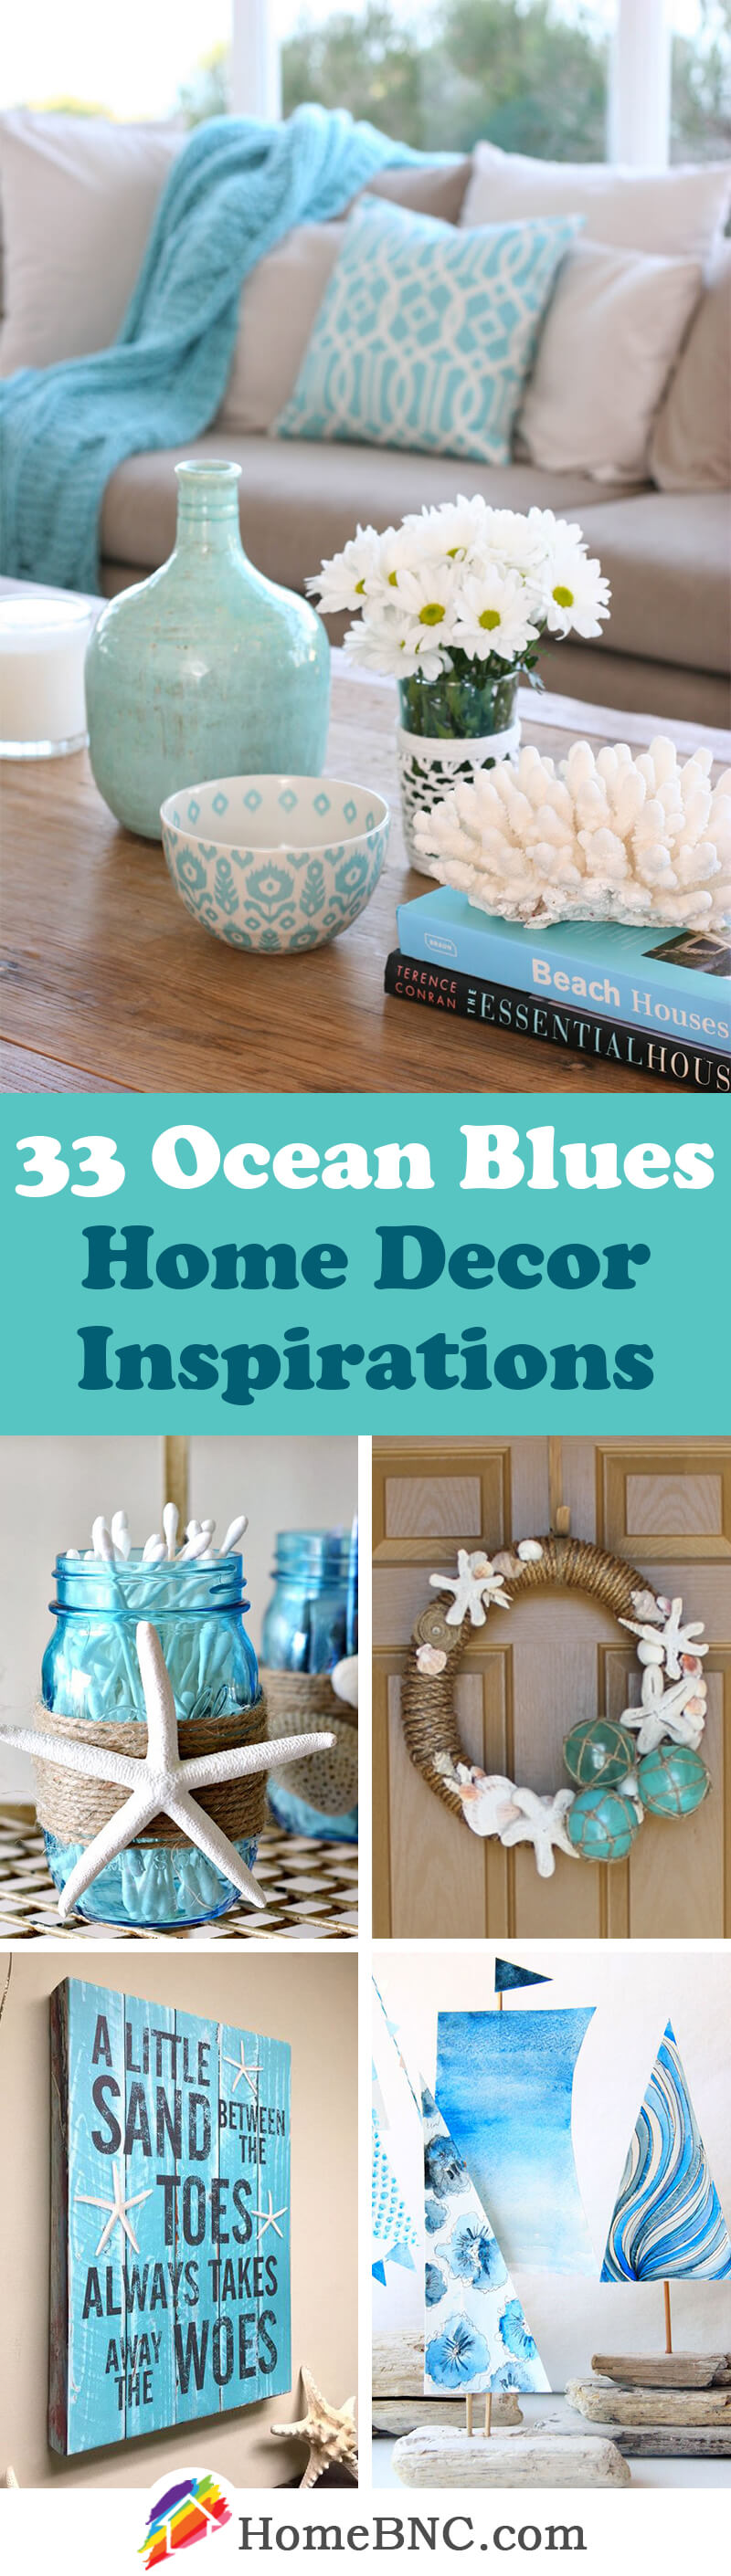 33 Ocean Blues Home Decor Inspirations to Bring Some Zen to Your Home & 33 Best Ocean Blues Home Decor Inspiration Ideas and Designs for 2018